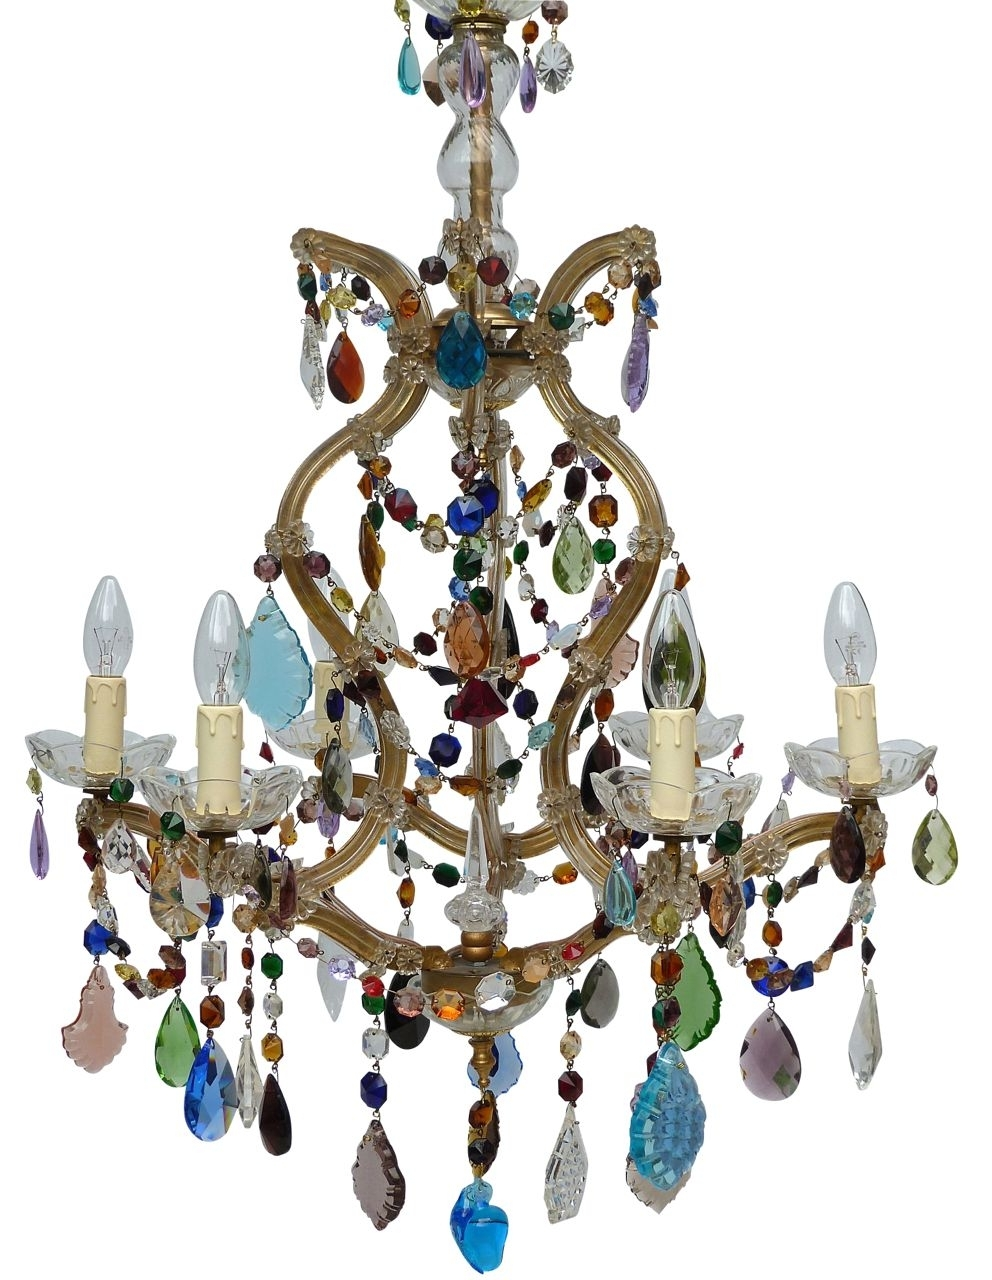 Well Liked The Vintage Chandelier Companymulti Coloured Archives – Page 3 Of 3 In Coloured Chandeliers (View 15 of 15)